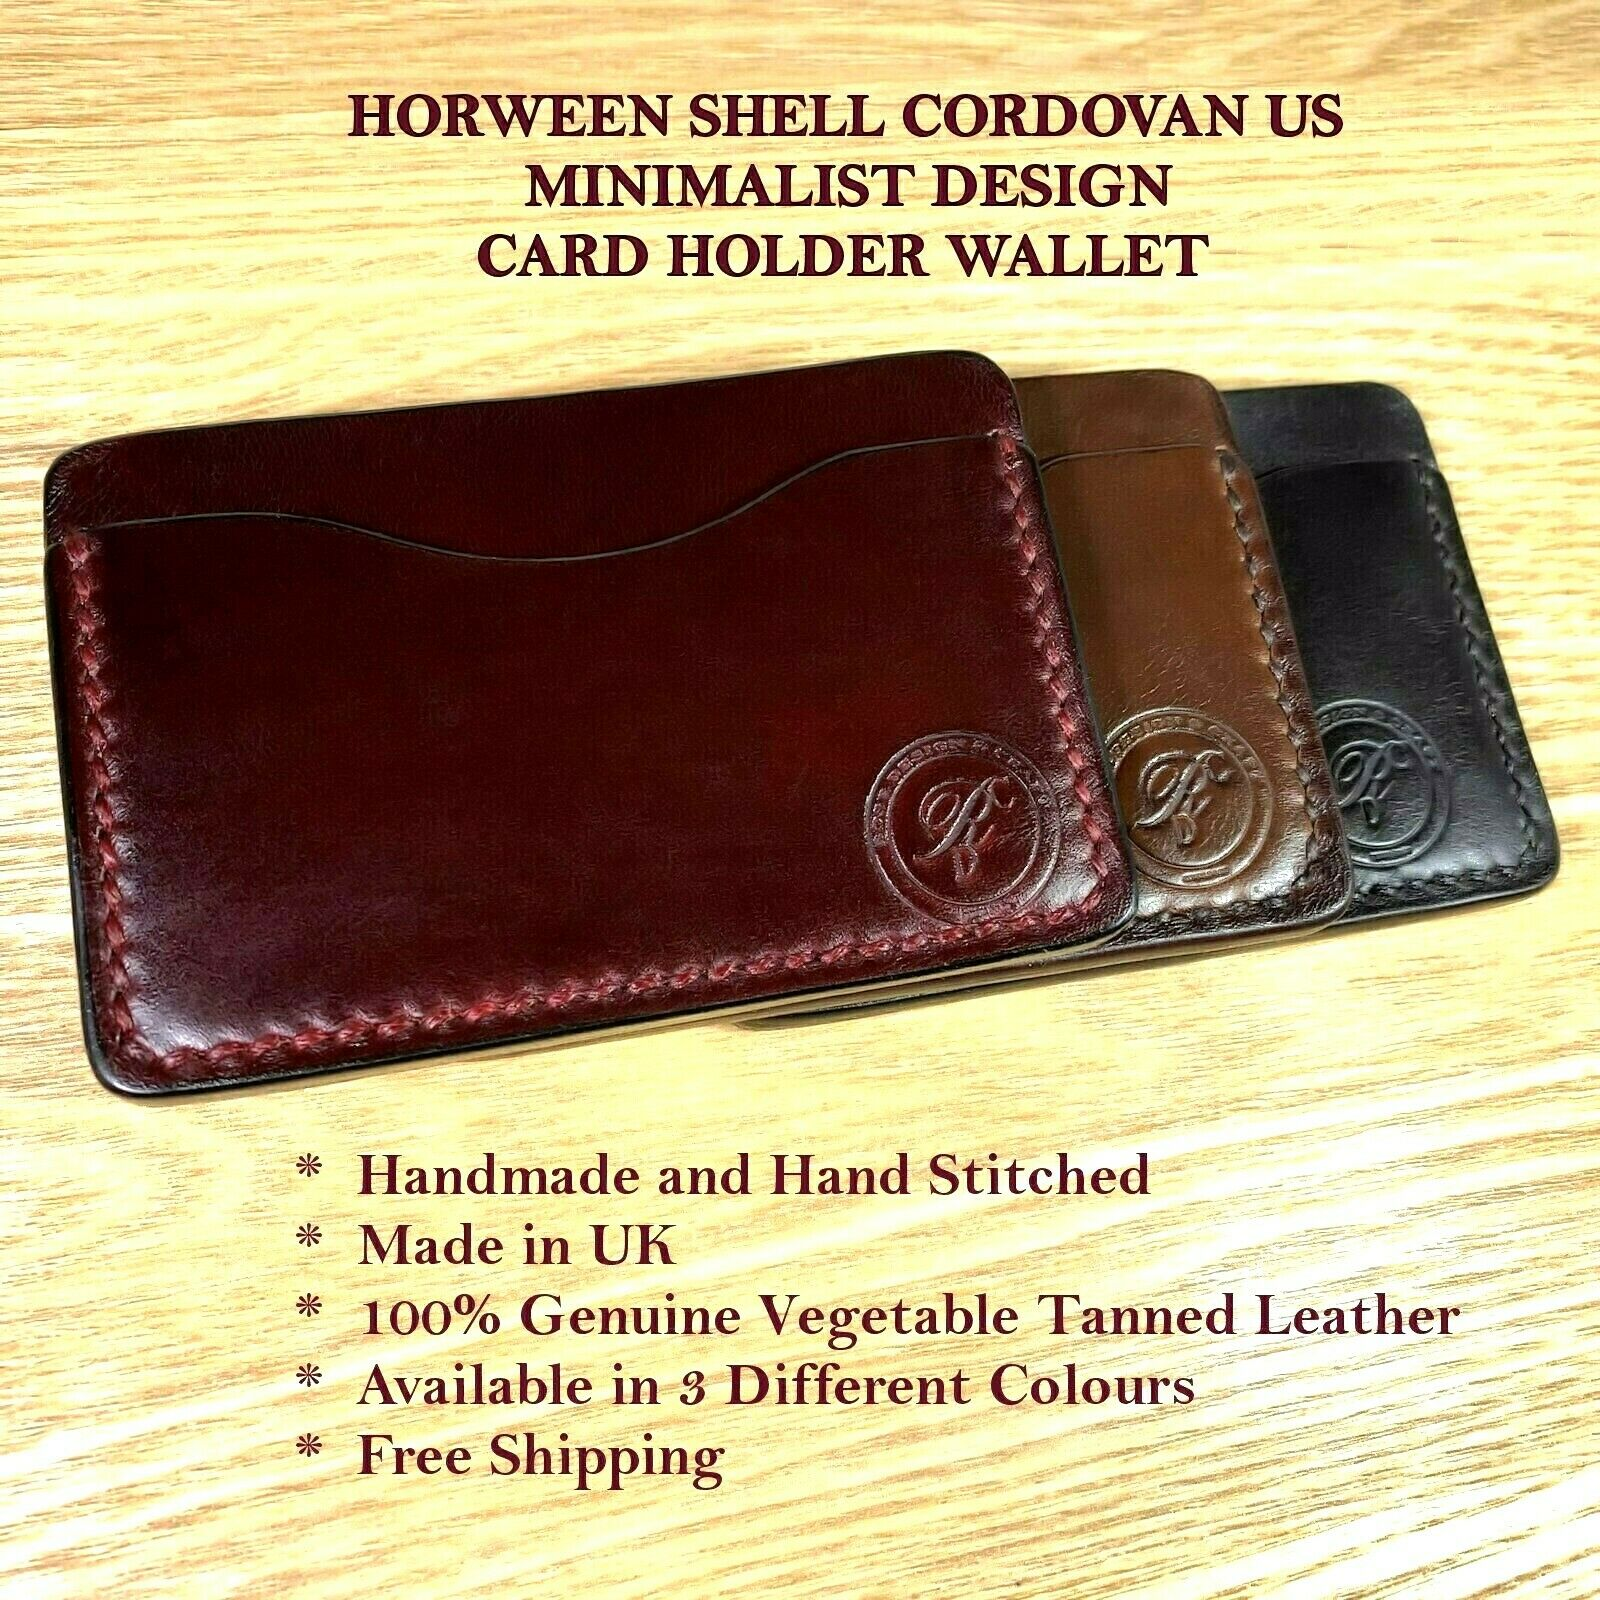 Personalised Handmade Minimalist Horween Card Holder Wallet Real Leather Gift